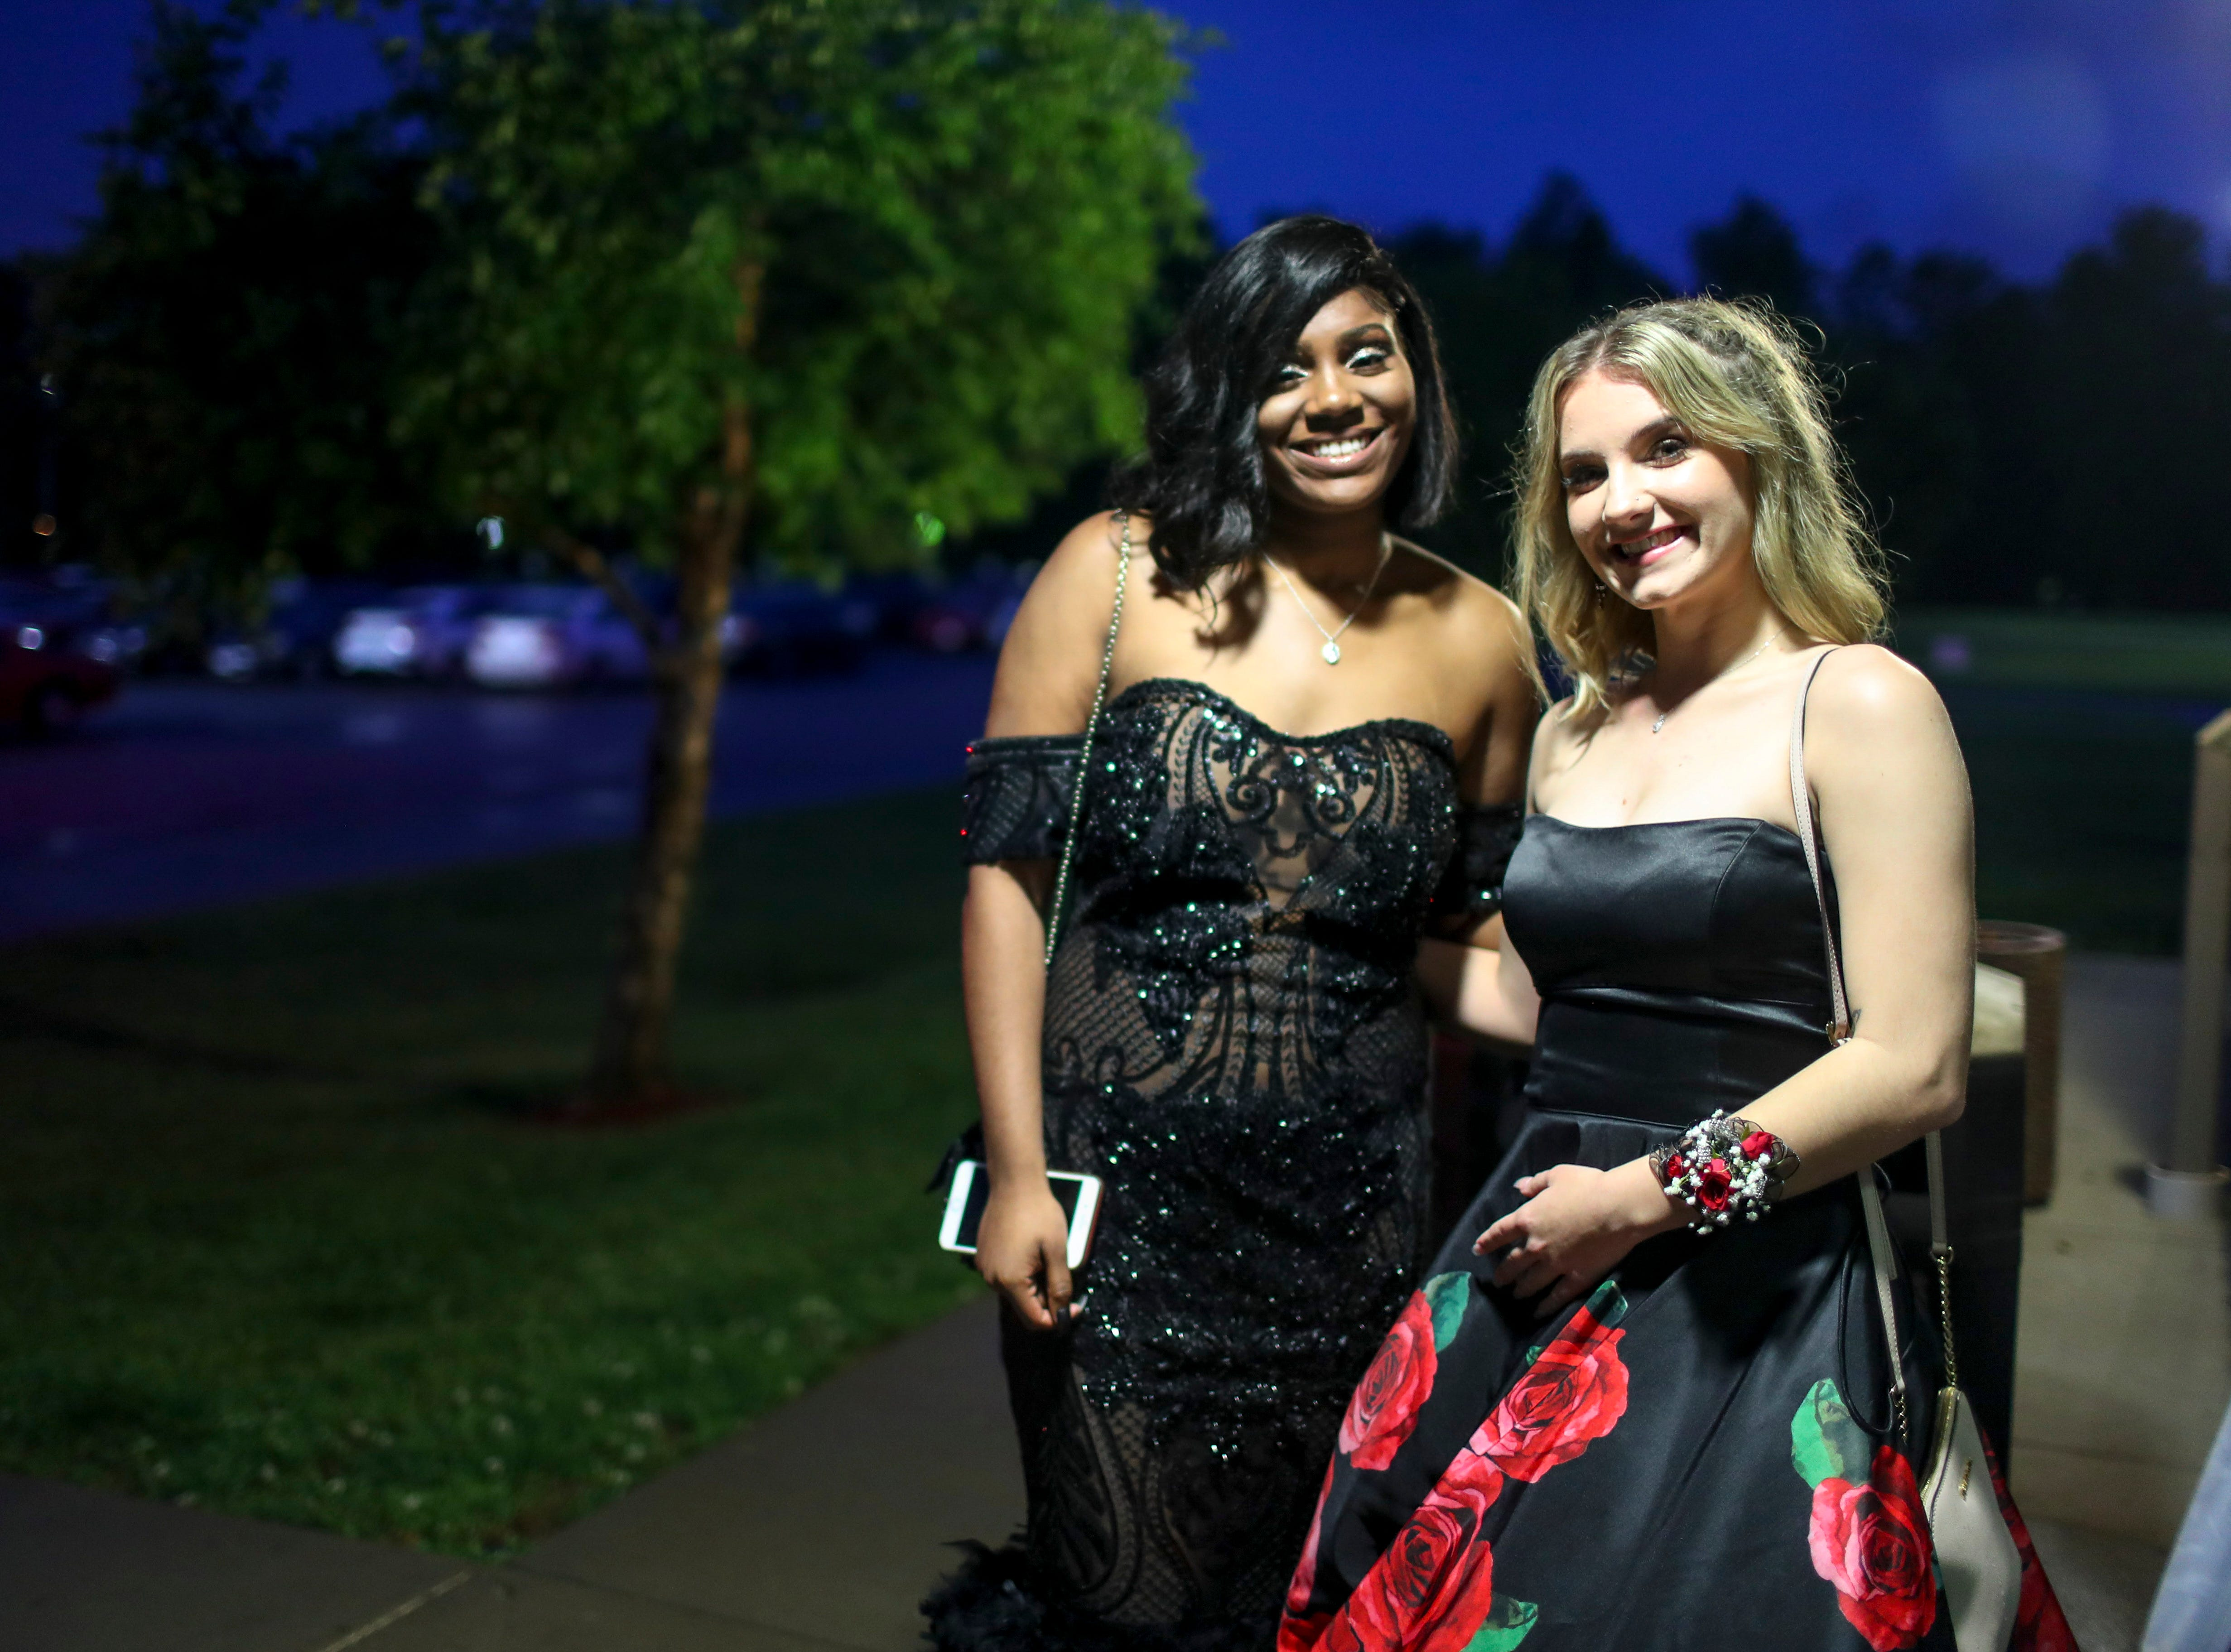 """Hundreds of students from Kenwood High School celebrated their 2019 prom themed """"Cherish the Moment"""" at Valor Hall in Oak Grove, KY., on Saturday, May 4, 2019."""